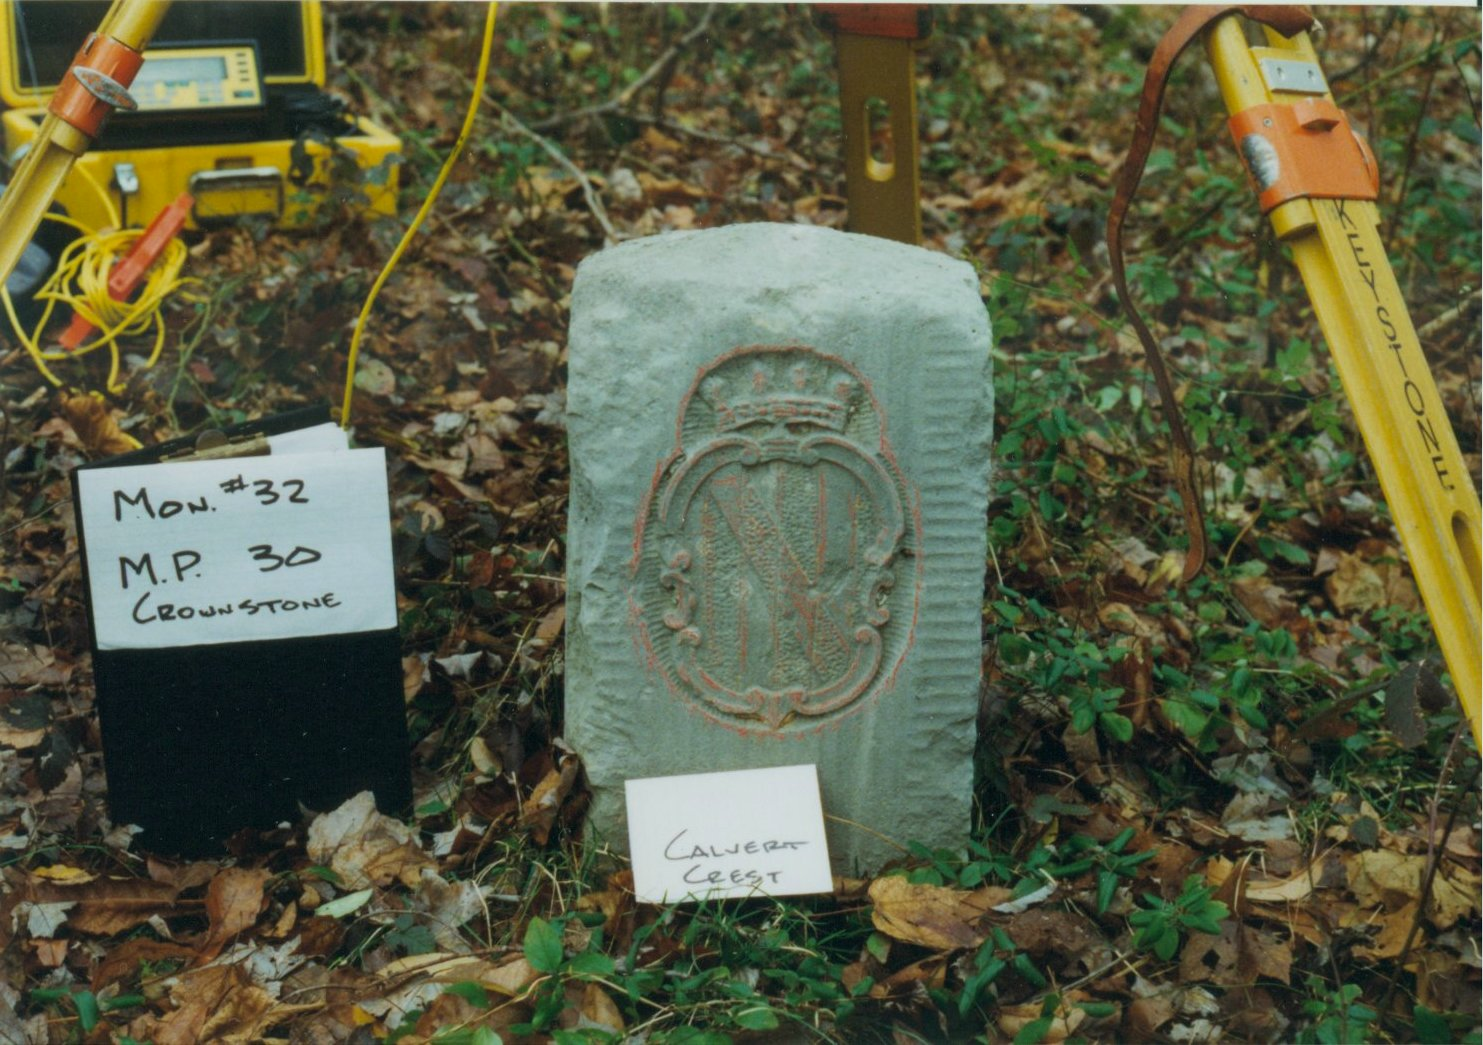 Crownstone 30 - USGS#32